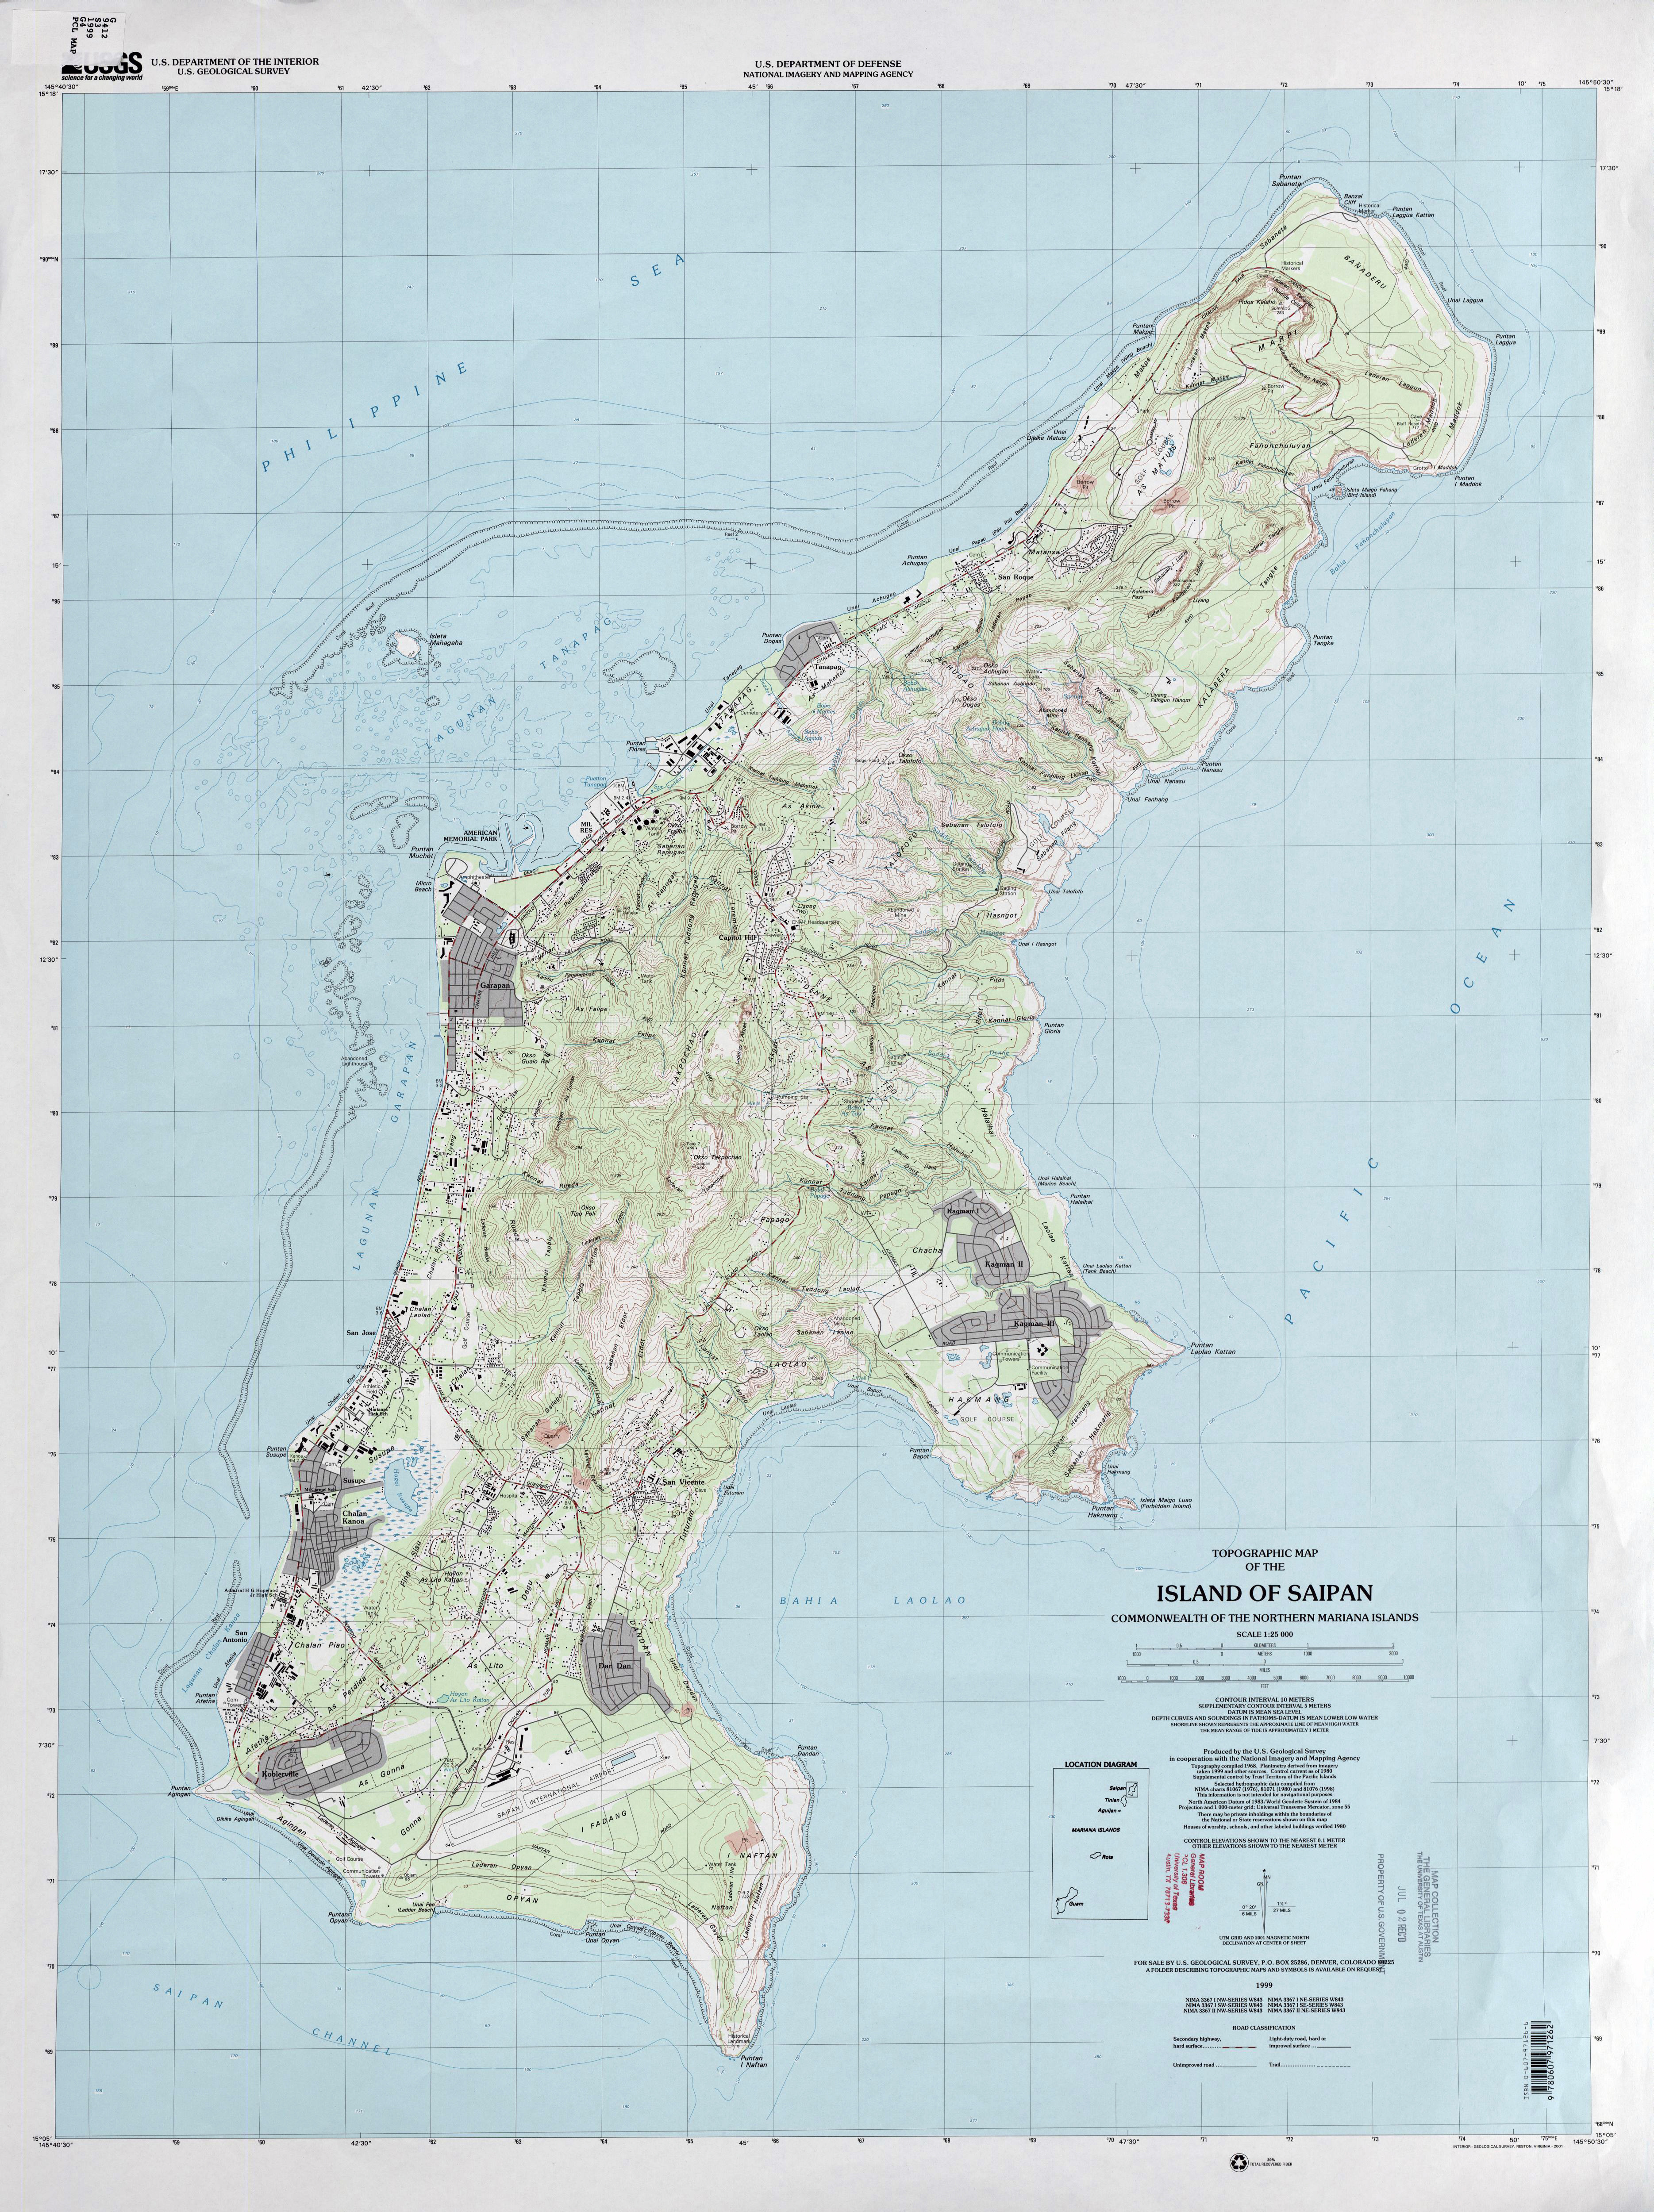 Topographical map of Saipan island in the Commonwealth of Northern Mariana Islands.